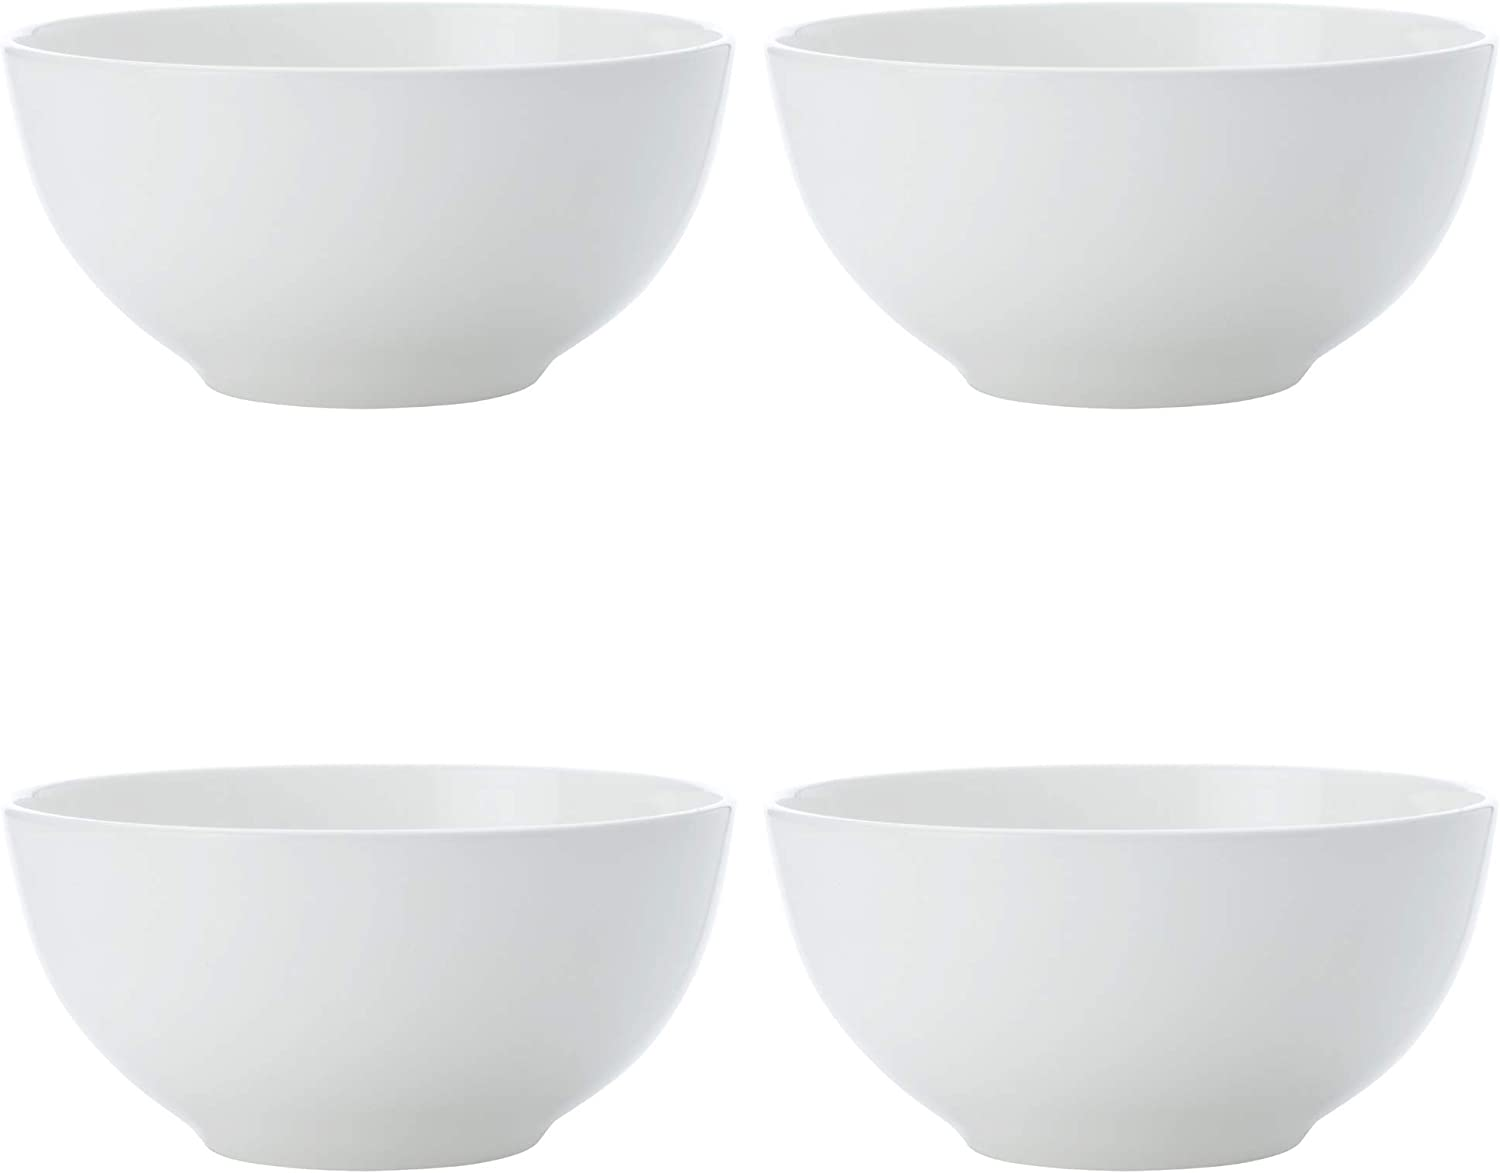 10 cm Fine Bone China Maxwell /& Williams Cashmere Small Bowls for Rice or Dipping Set of 4 White